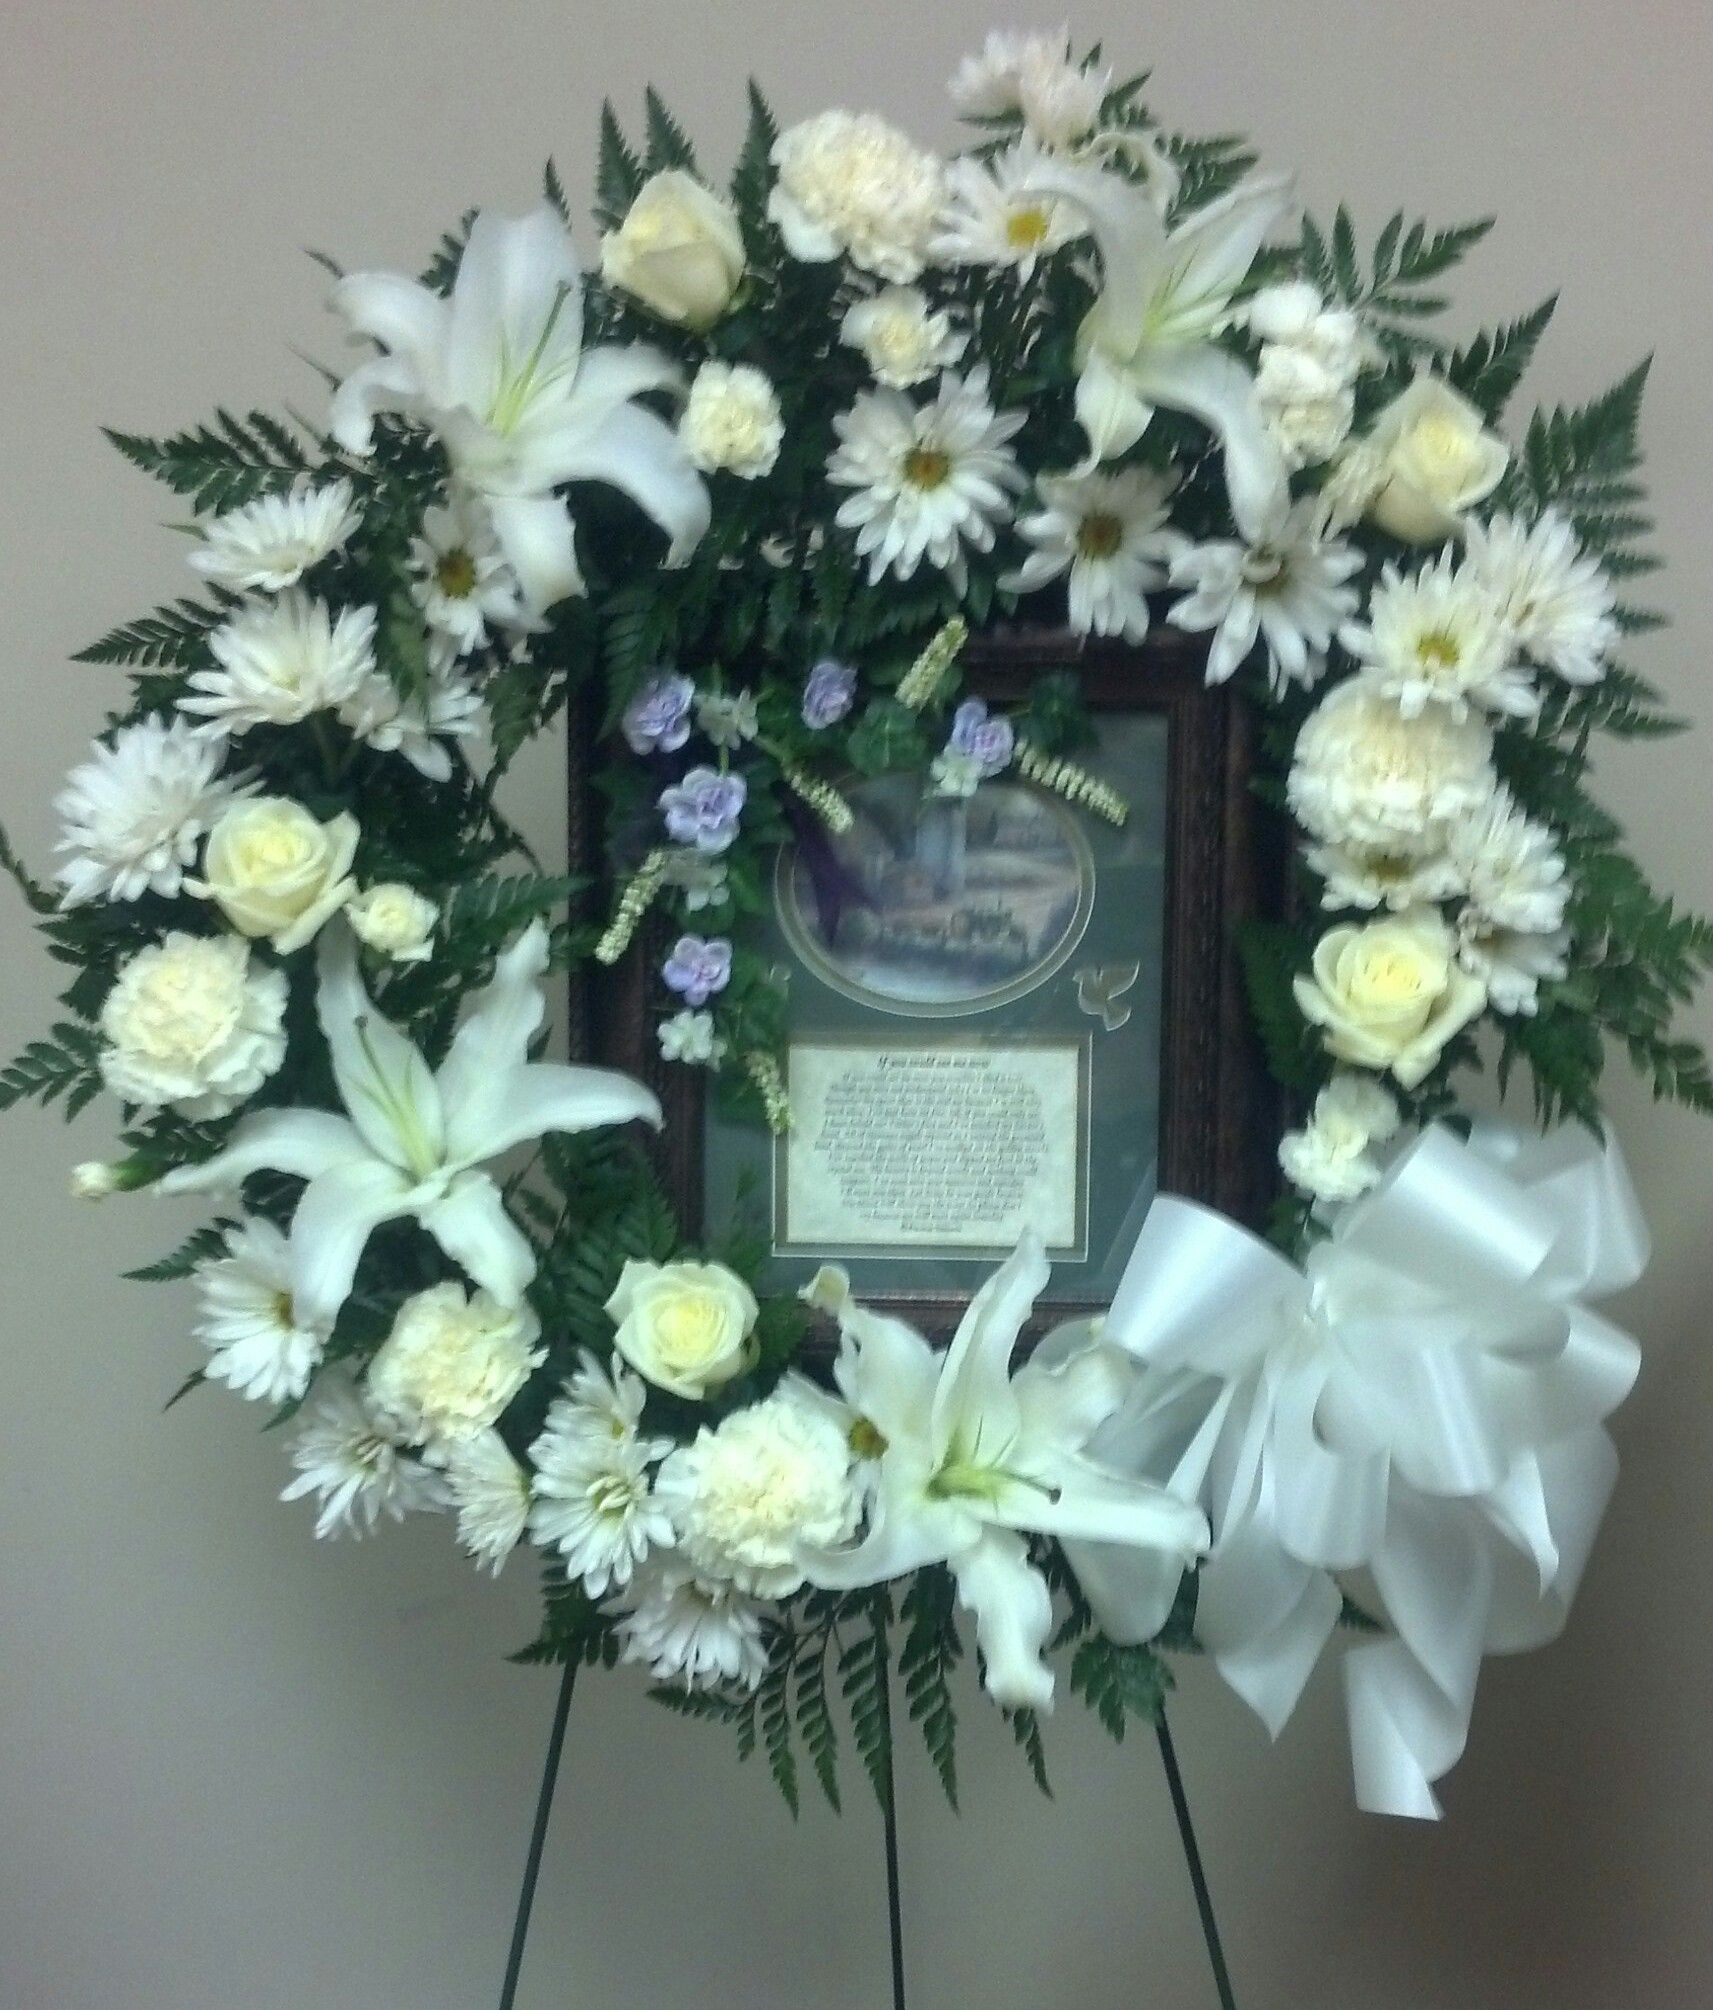 White Sympathy Wreath White Siberian Lily Daisy White Rose And White Carnations Funeral Arrangements White Carnation White Roses